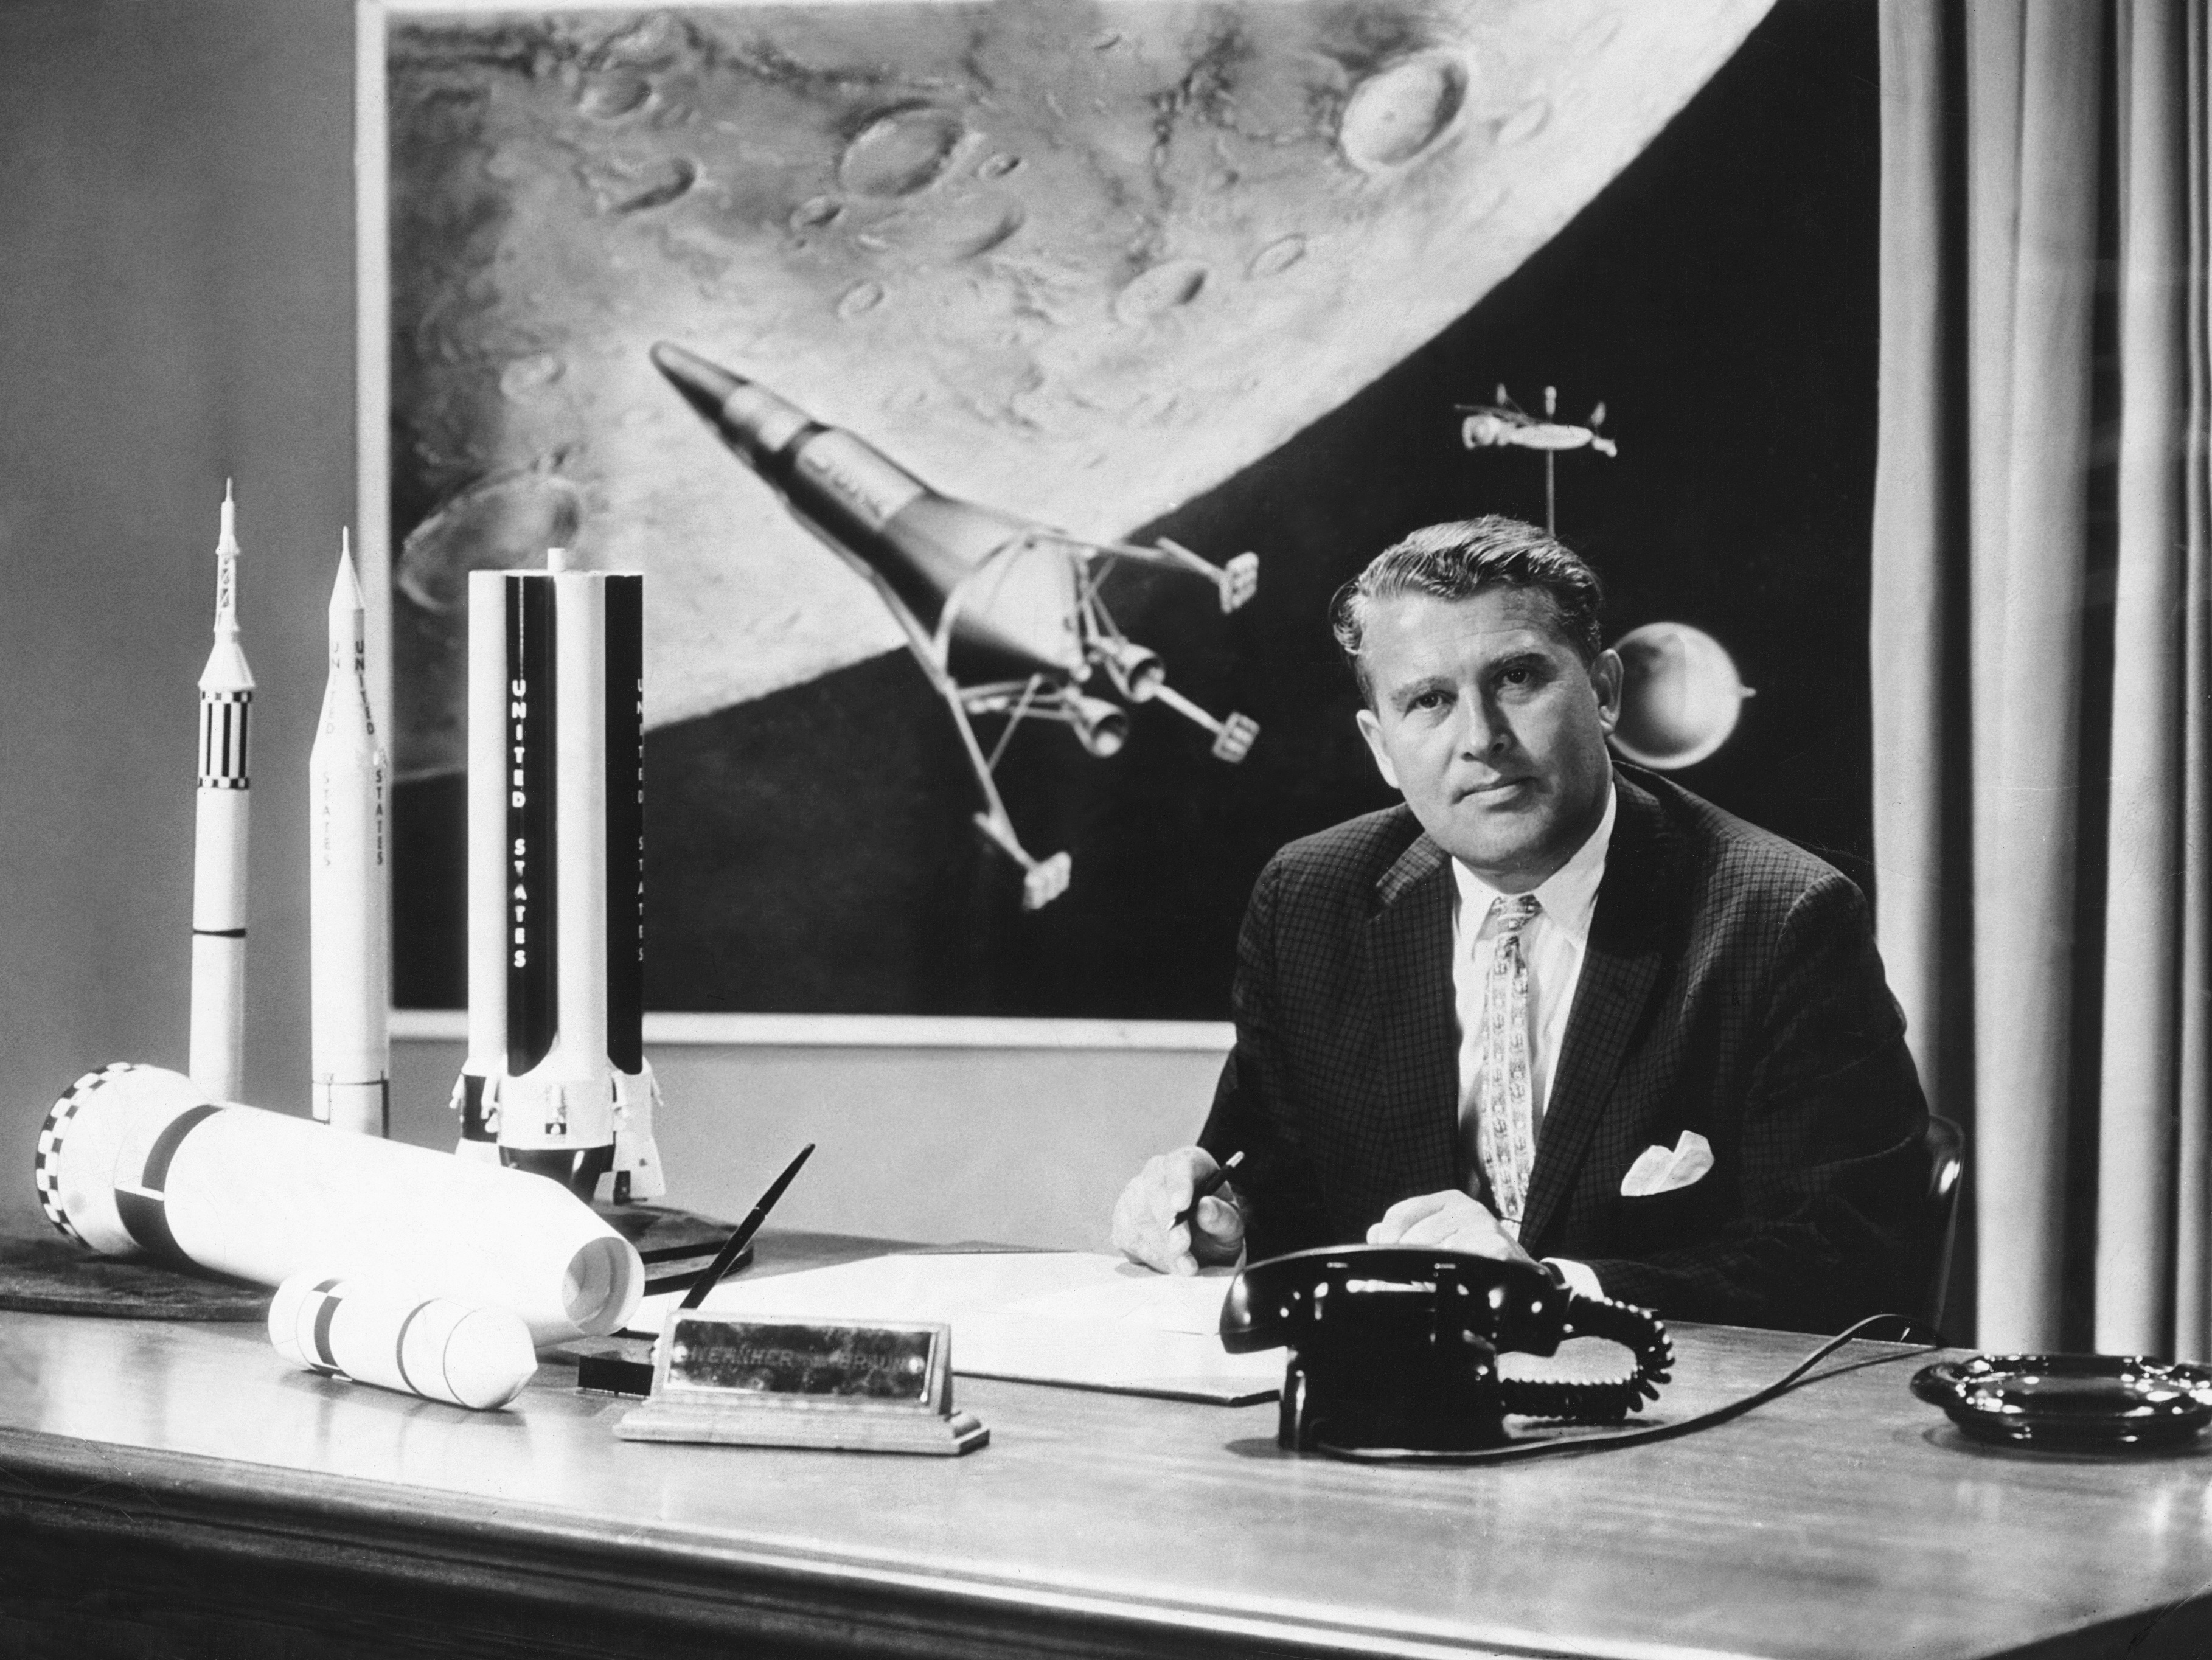 Werner von Braun (1912-1977), the German-born American rocket engineer with model rockets.